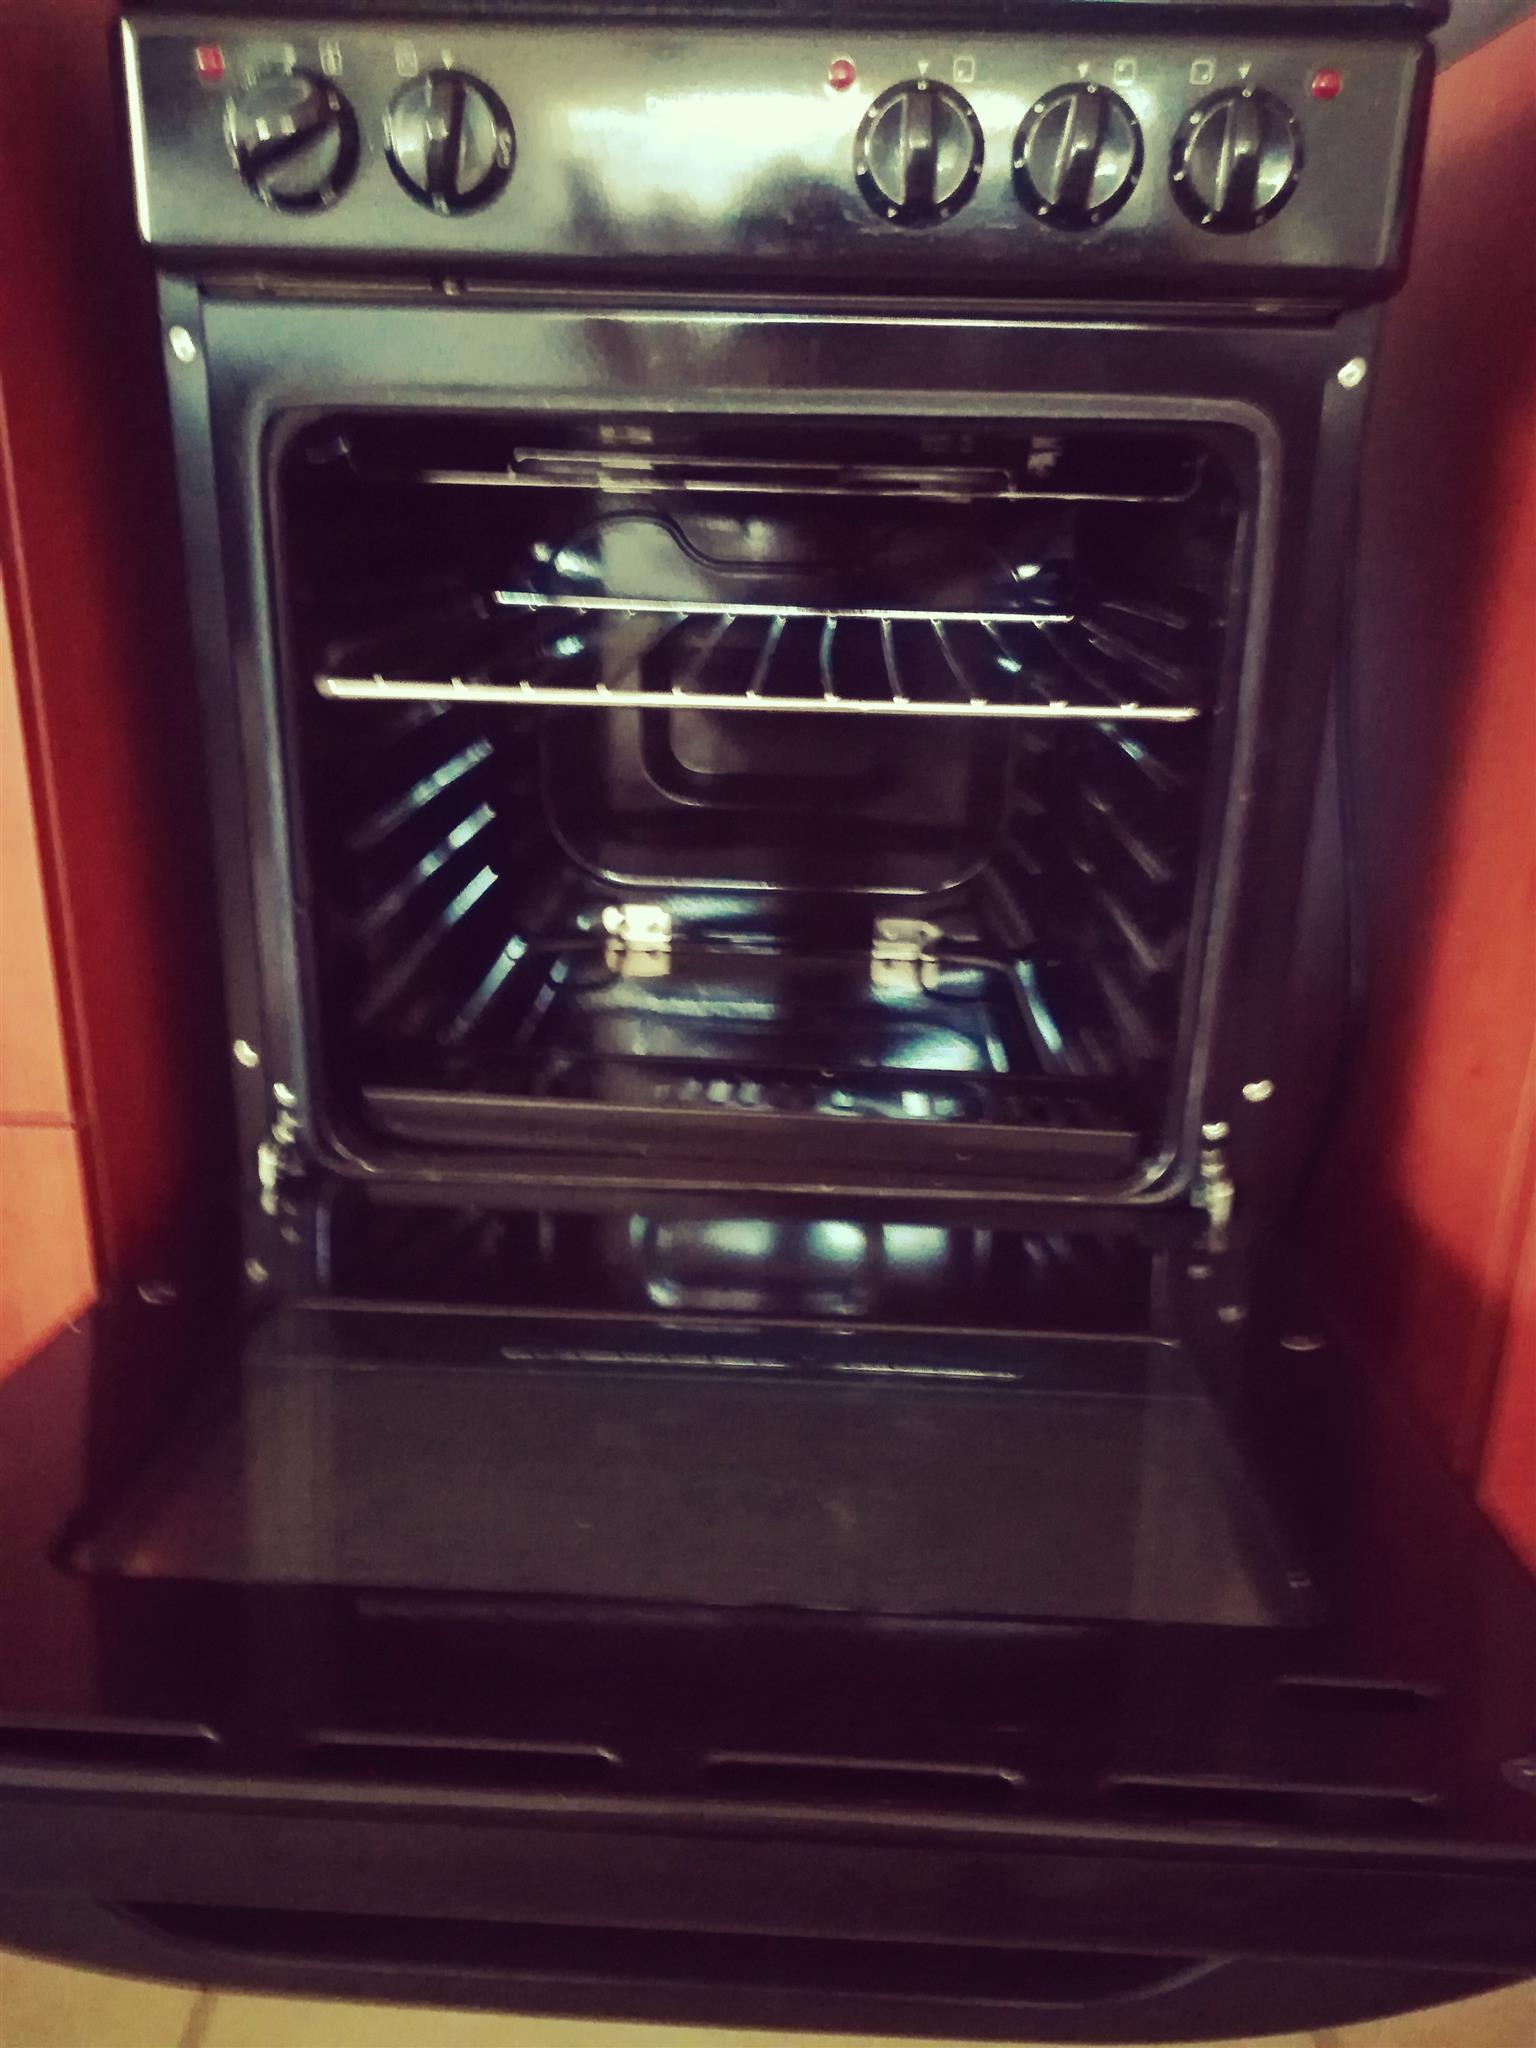 DEFY 3 plate electric stove and oven